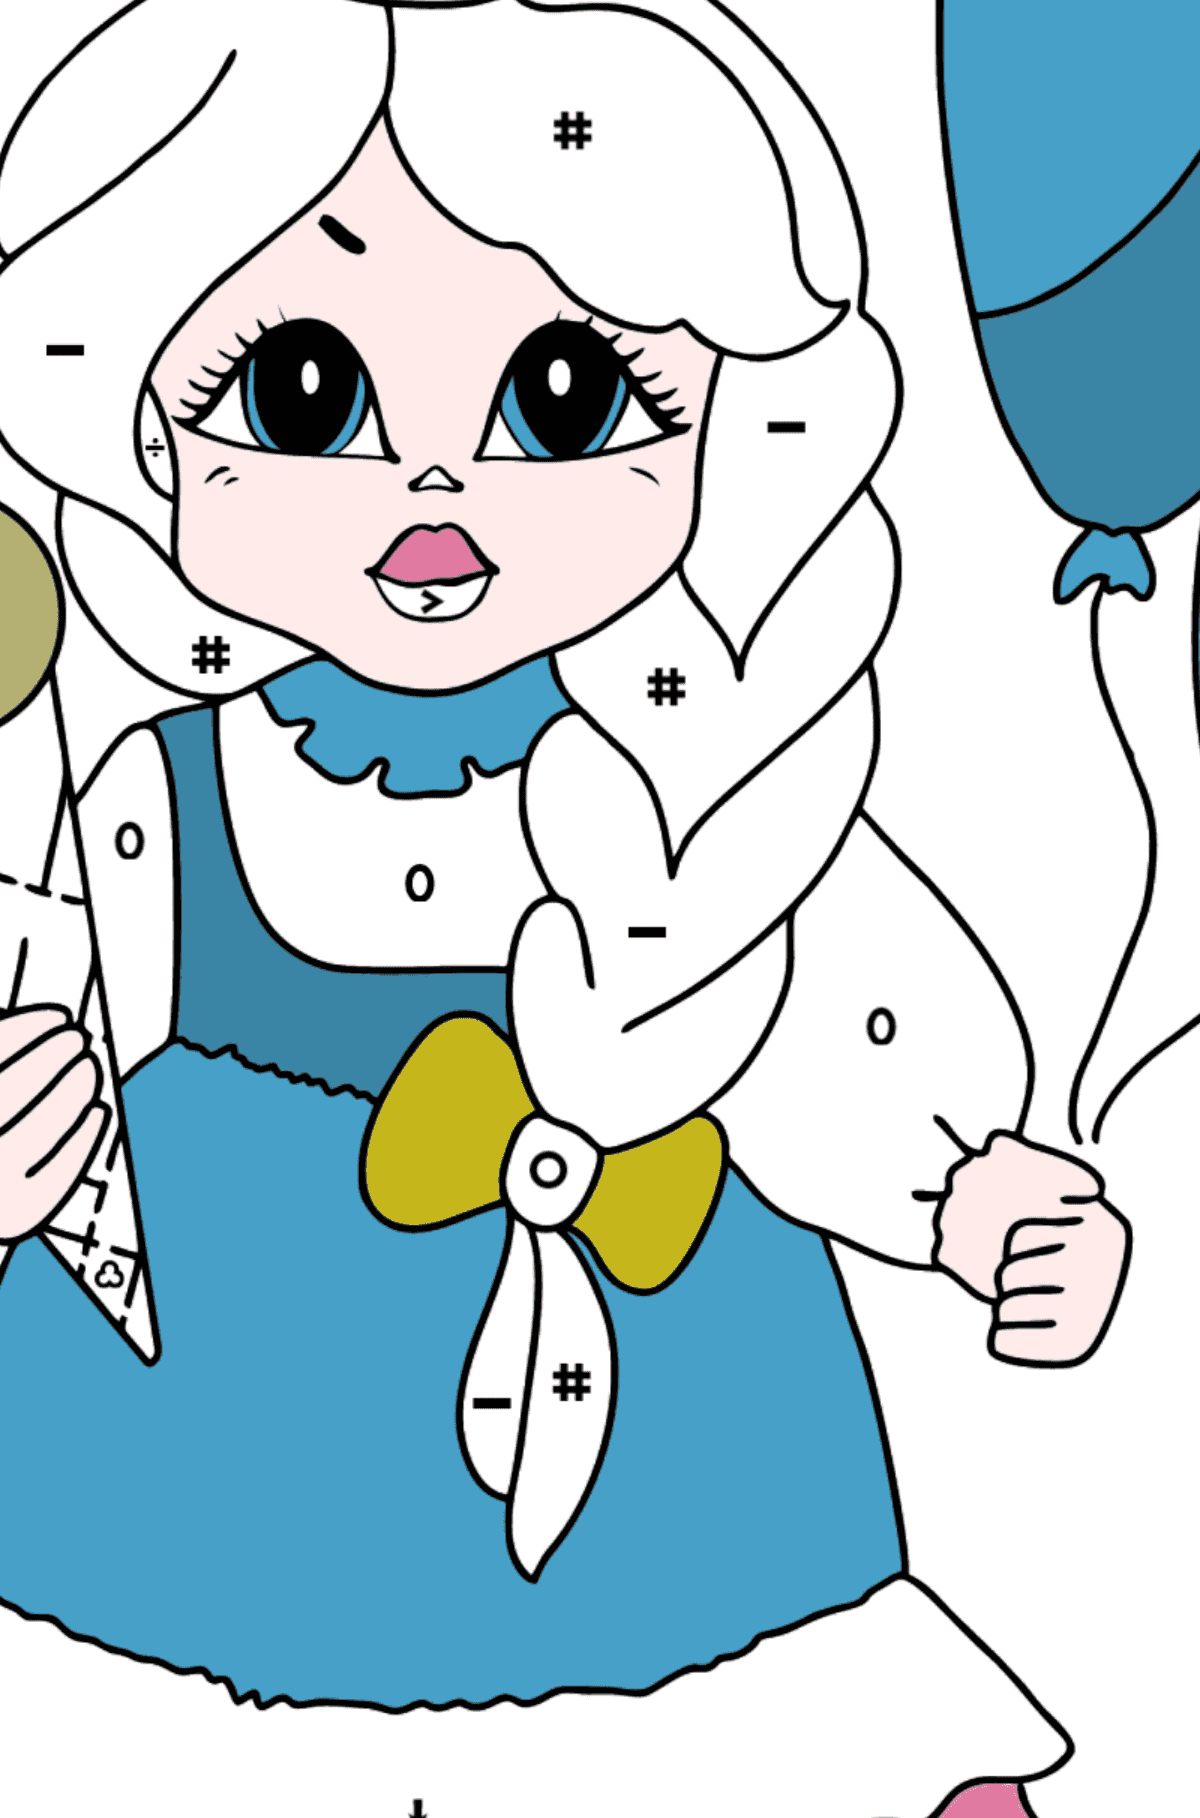 Coloring Page - A Princess with Ice Сream - For Girls - Coloring by Symbols and Geometric Shapes for Kids